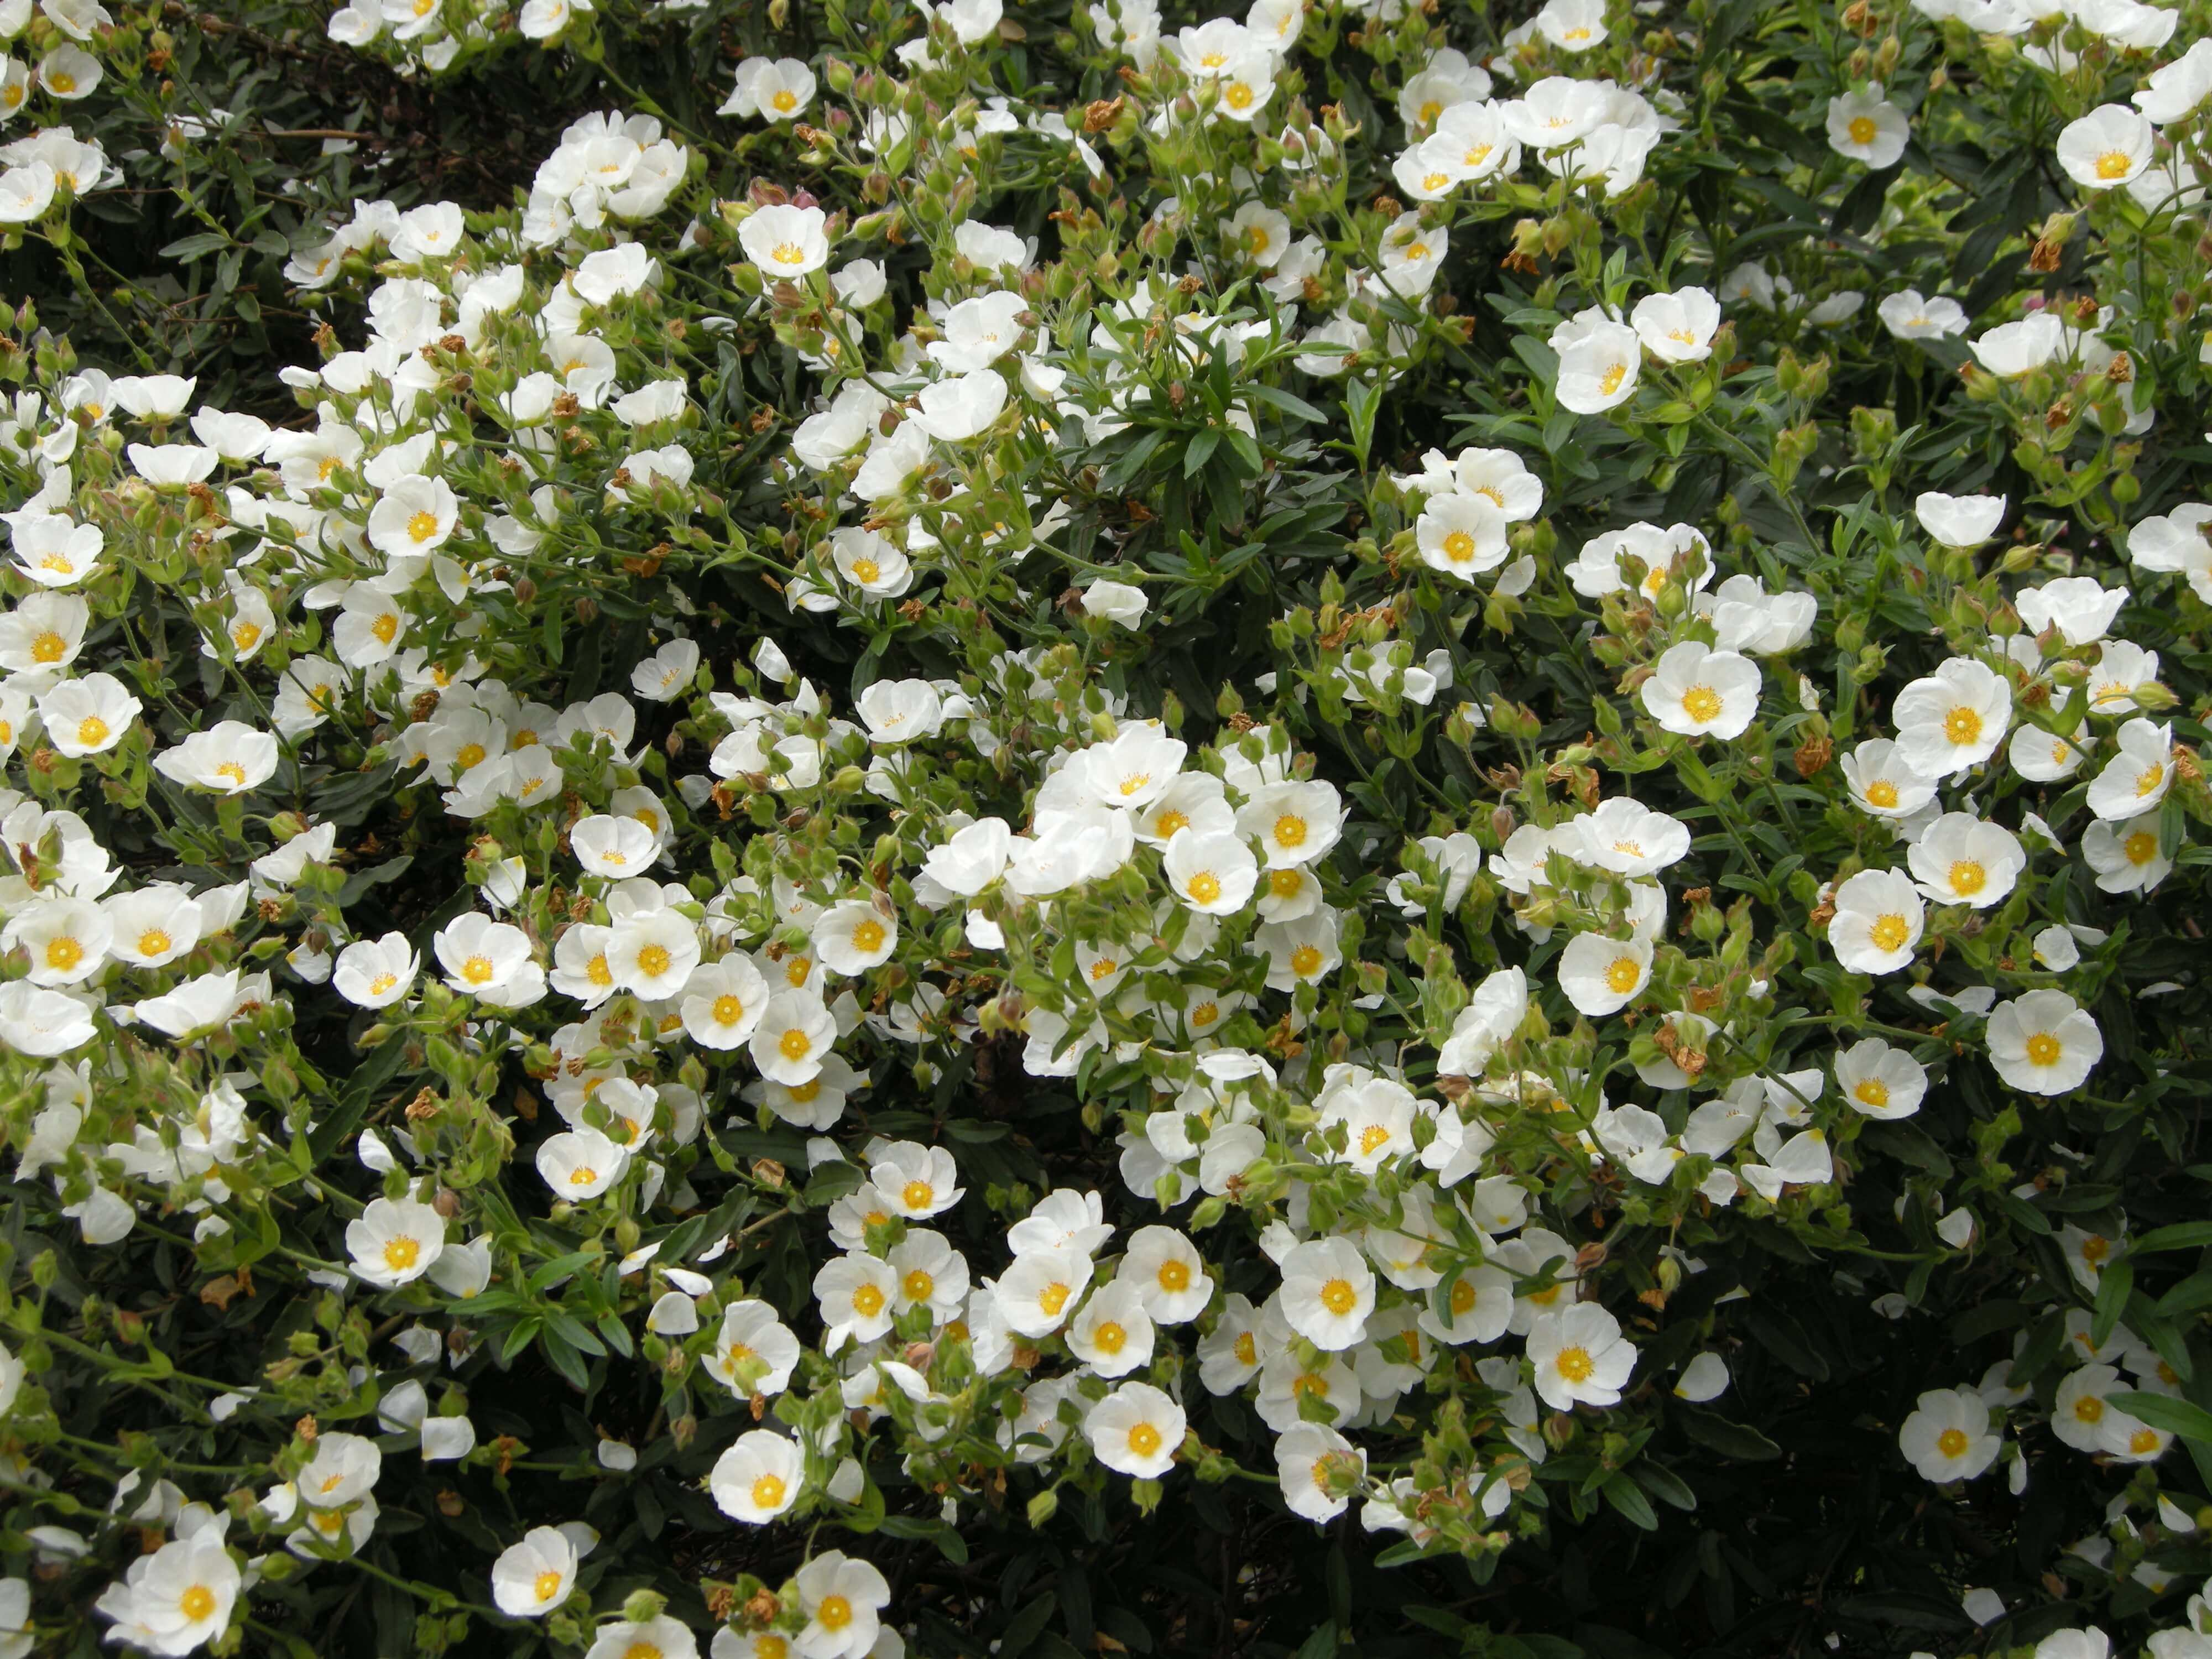 BMV Fragrnces offers Cistus essential oil including 100% Pure & Natural Cistus Super Absolute™, Cistus Concrete is spiritual oil and has been used for centuries for meditation.